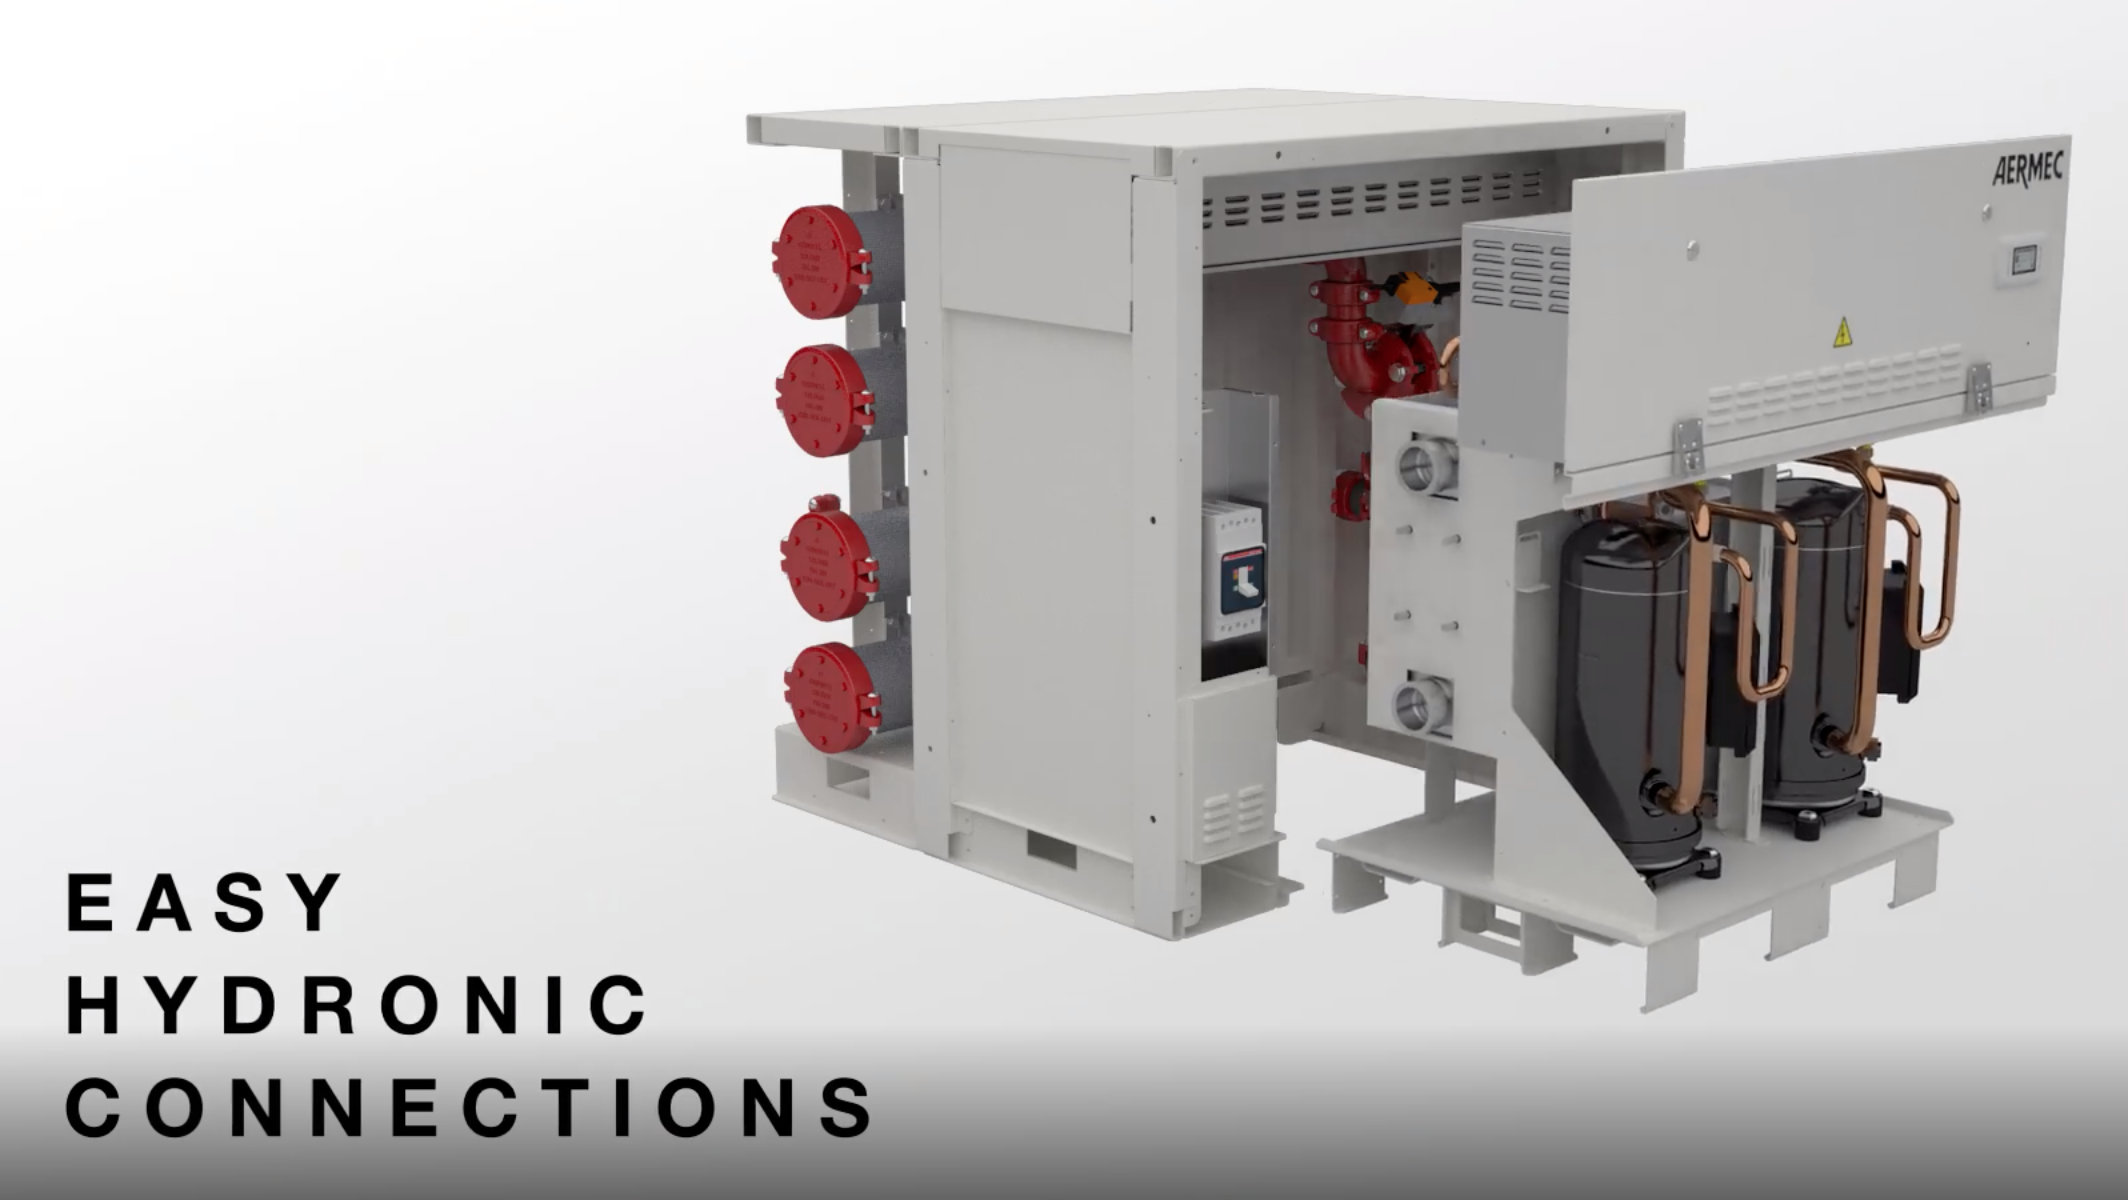 Aermec WWM Modular Chiller - Hydronic Connections